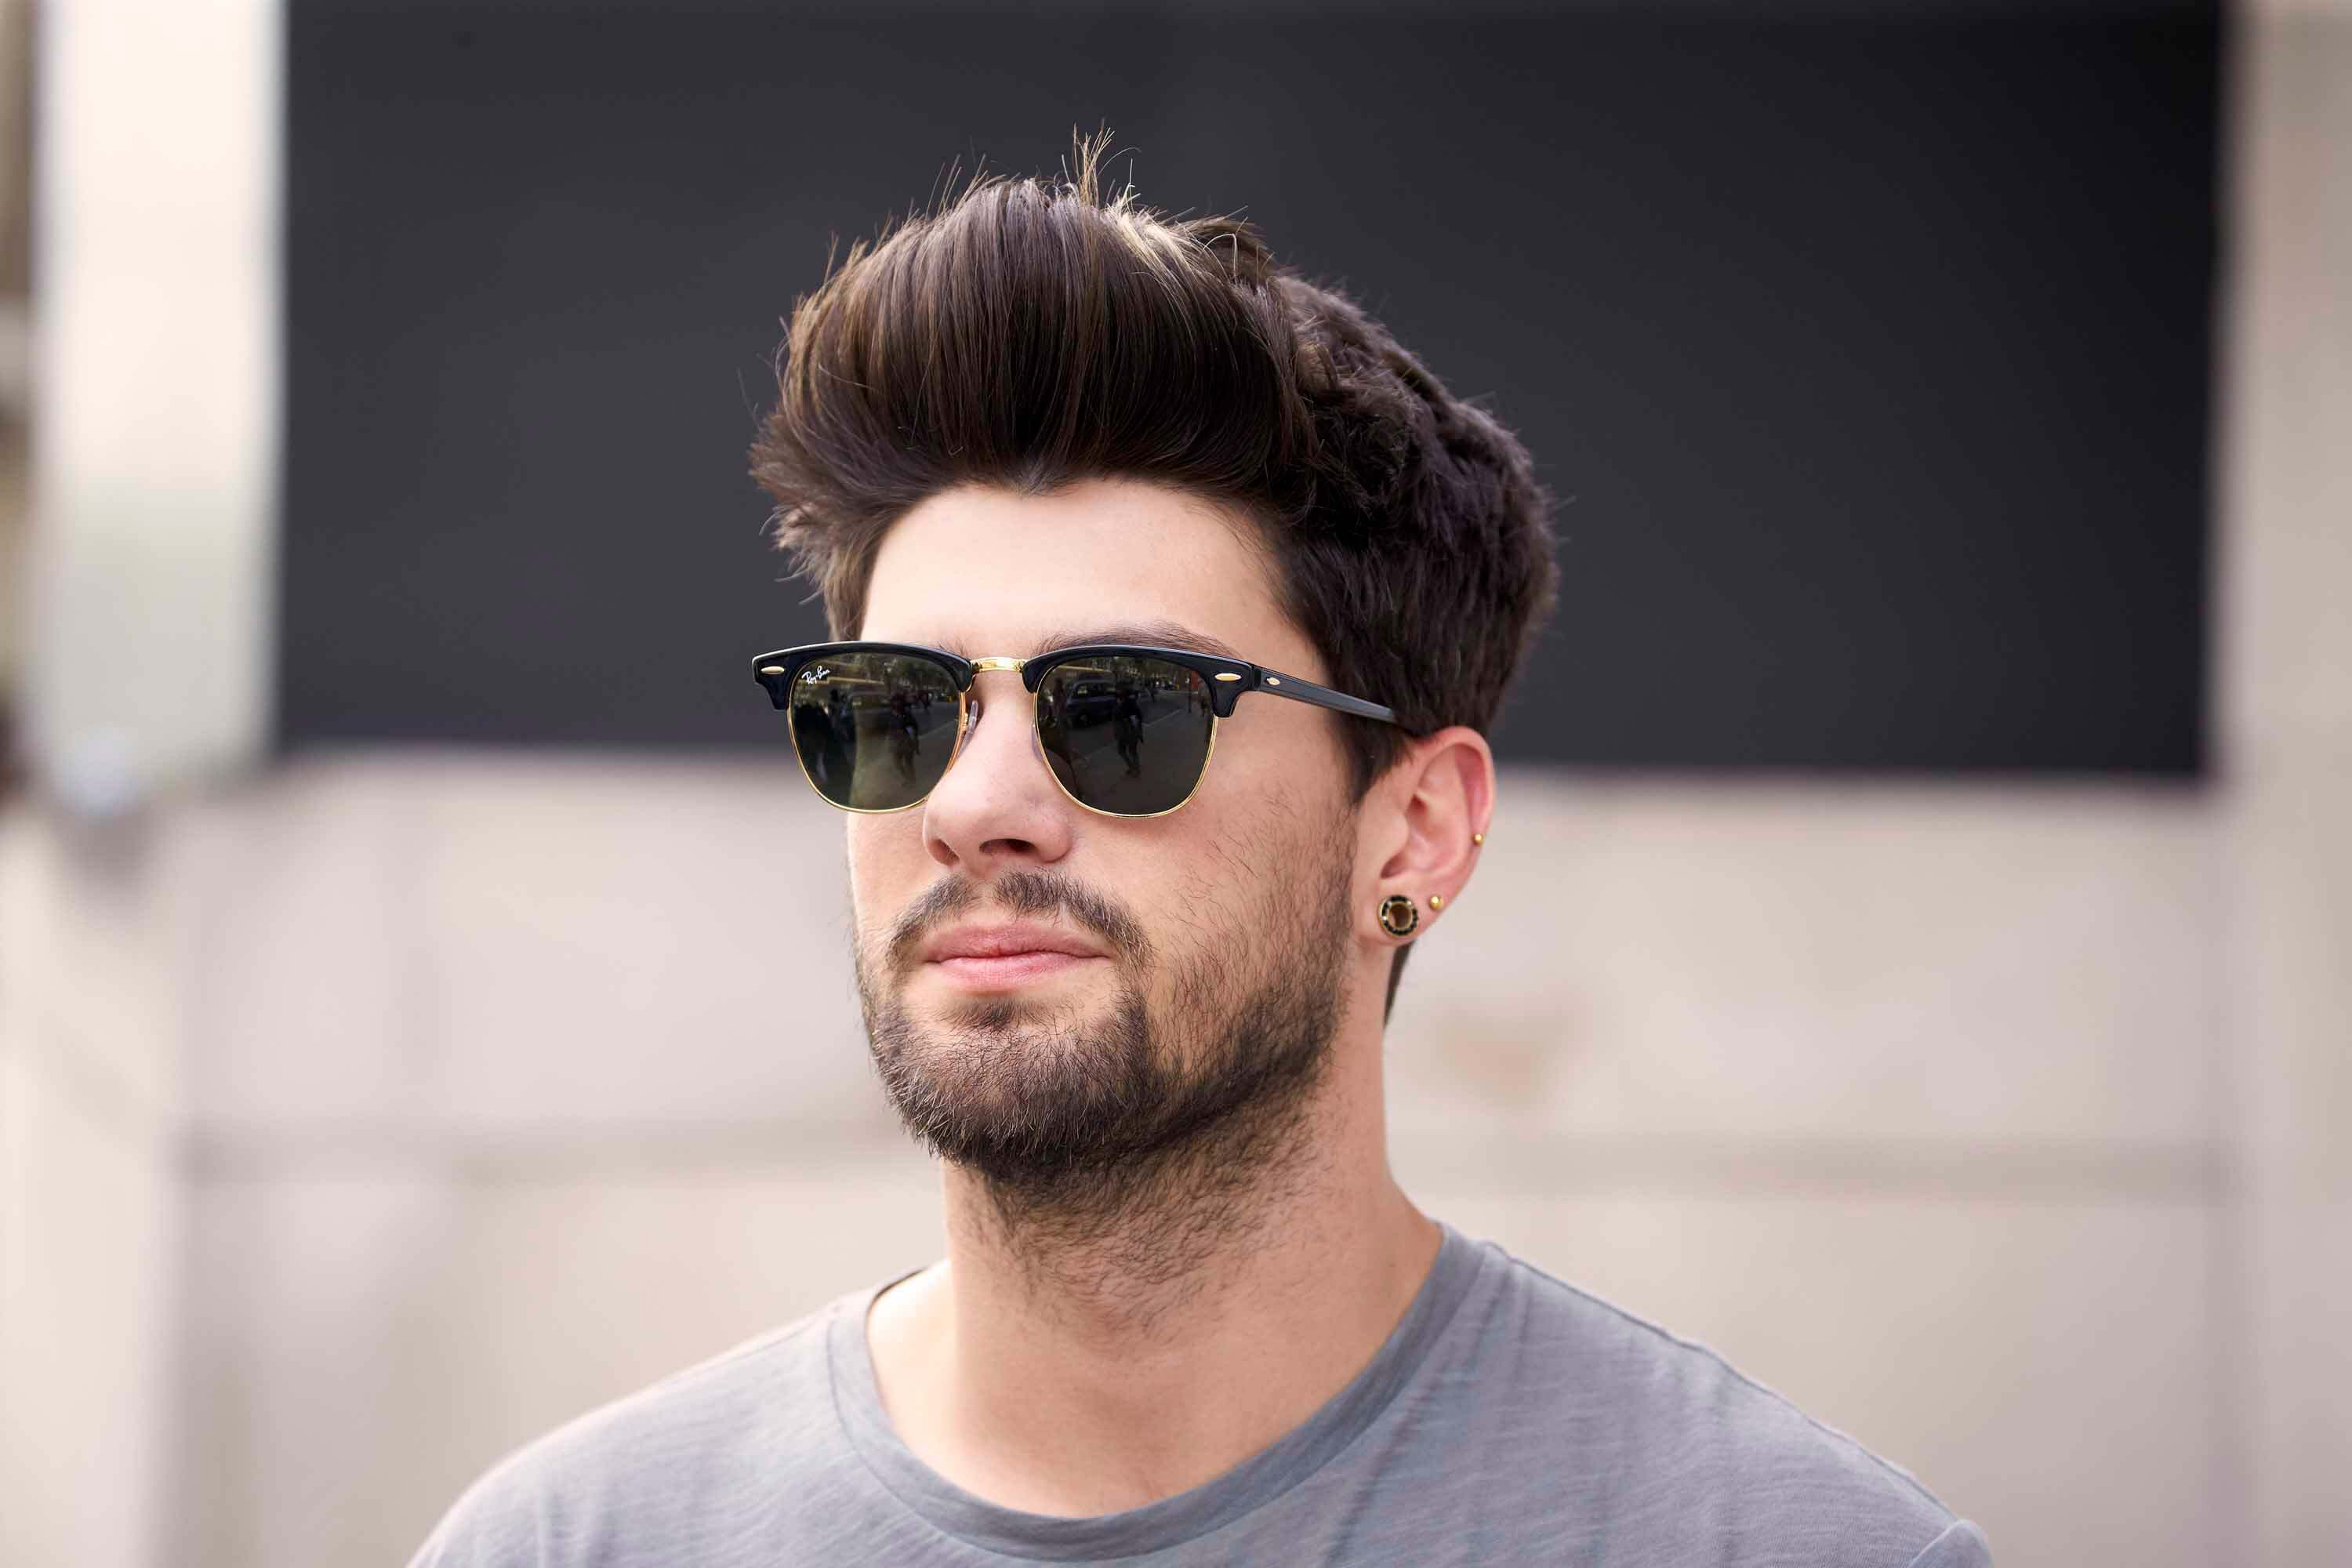 Vintage Hairstyles For Men 3 Easy To Recreate Looks We Love